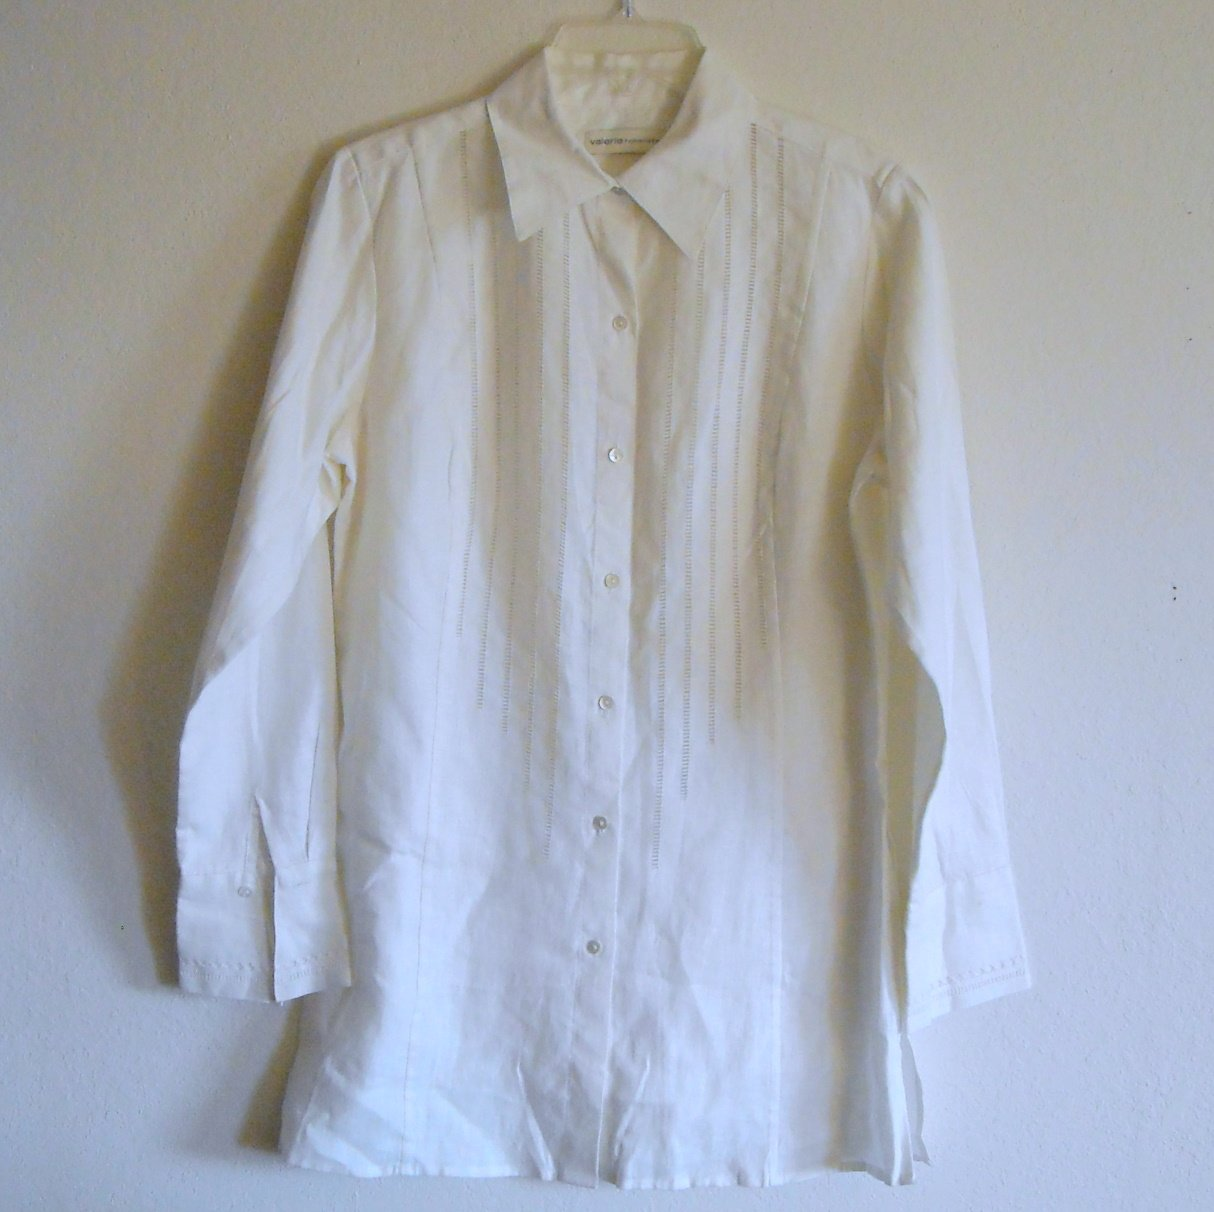 Valerie Seperates Misses Womens Linen Blouse Top Size S